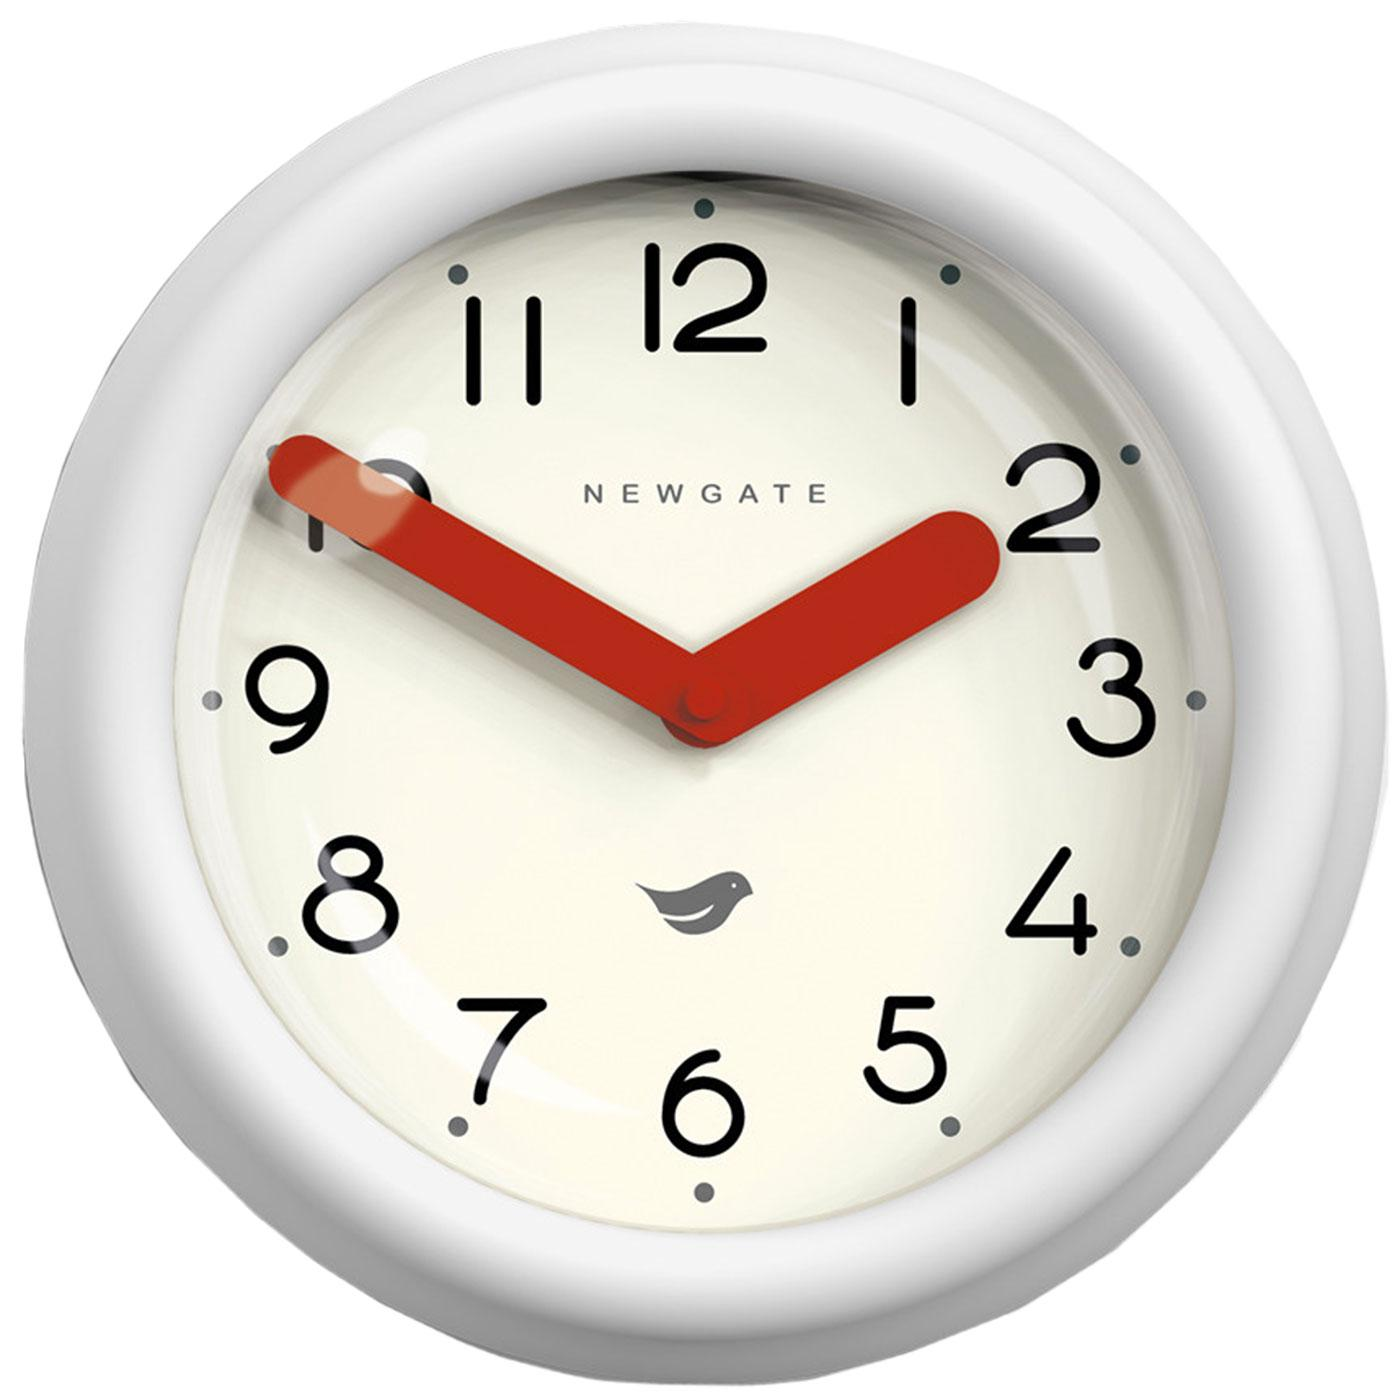 Pantry NEWGATE CLOCKS Retro Wall Clock in White